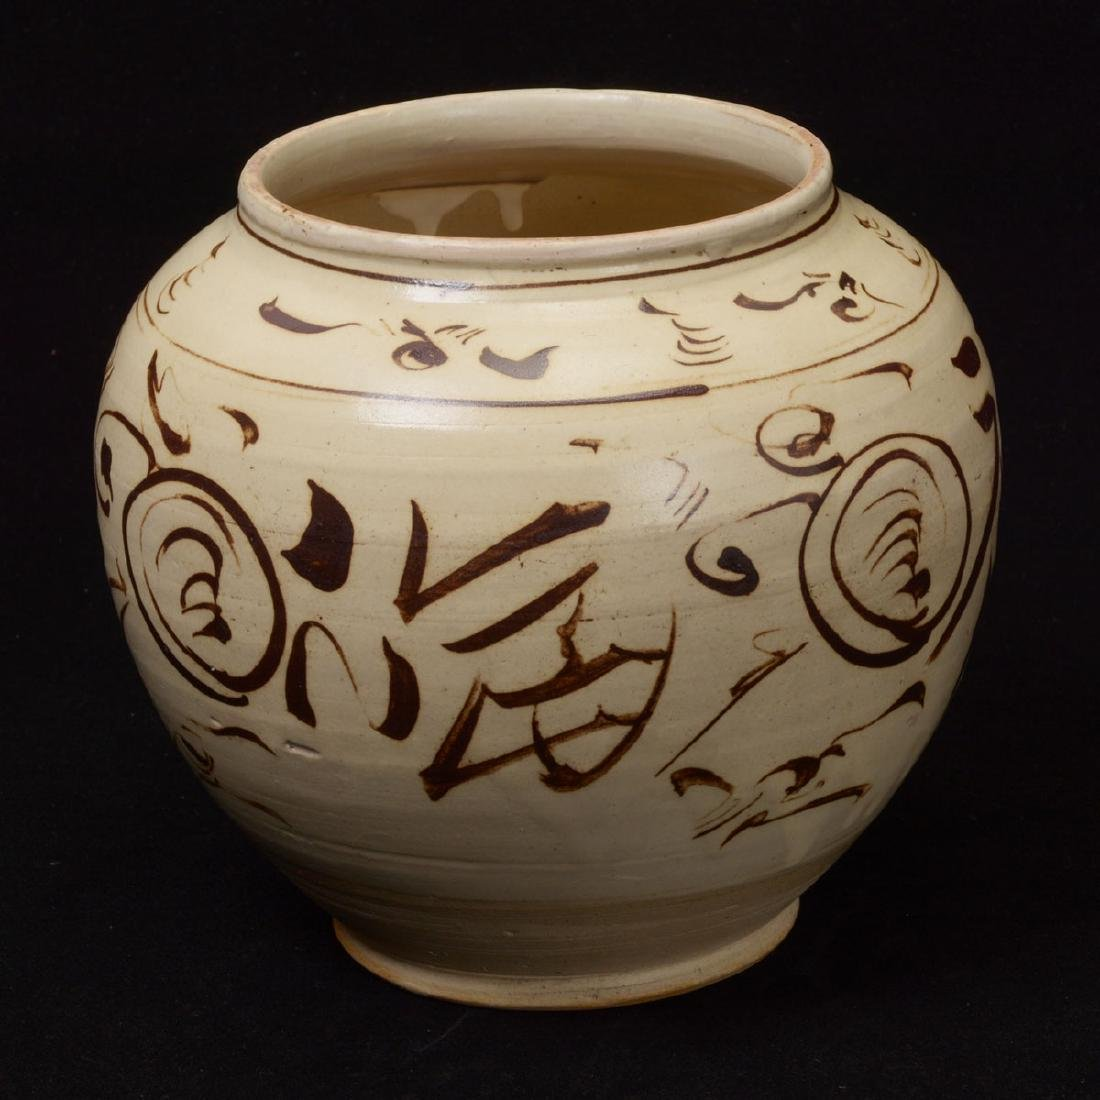 Cizhou Glazed Ceramic Jar, Yuan Dynasty